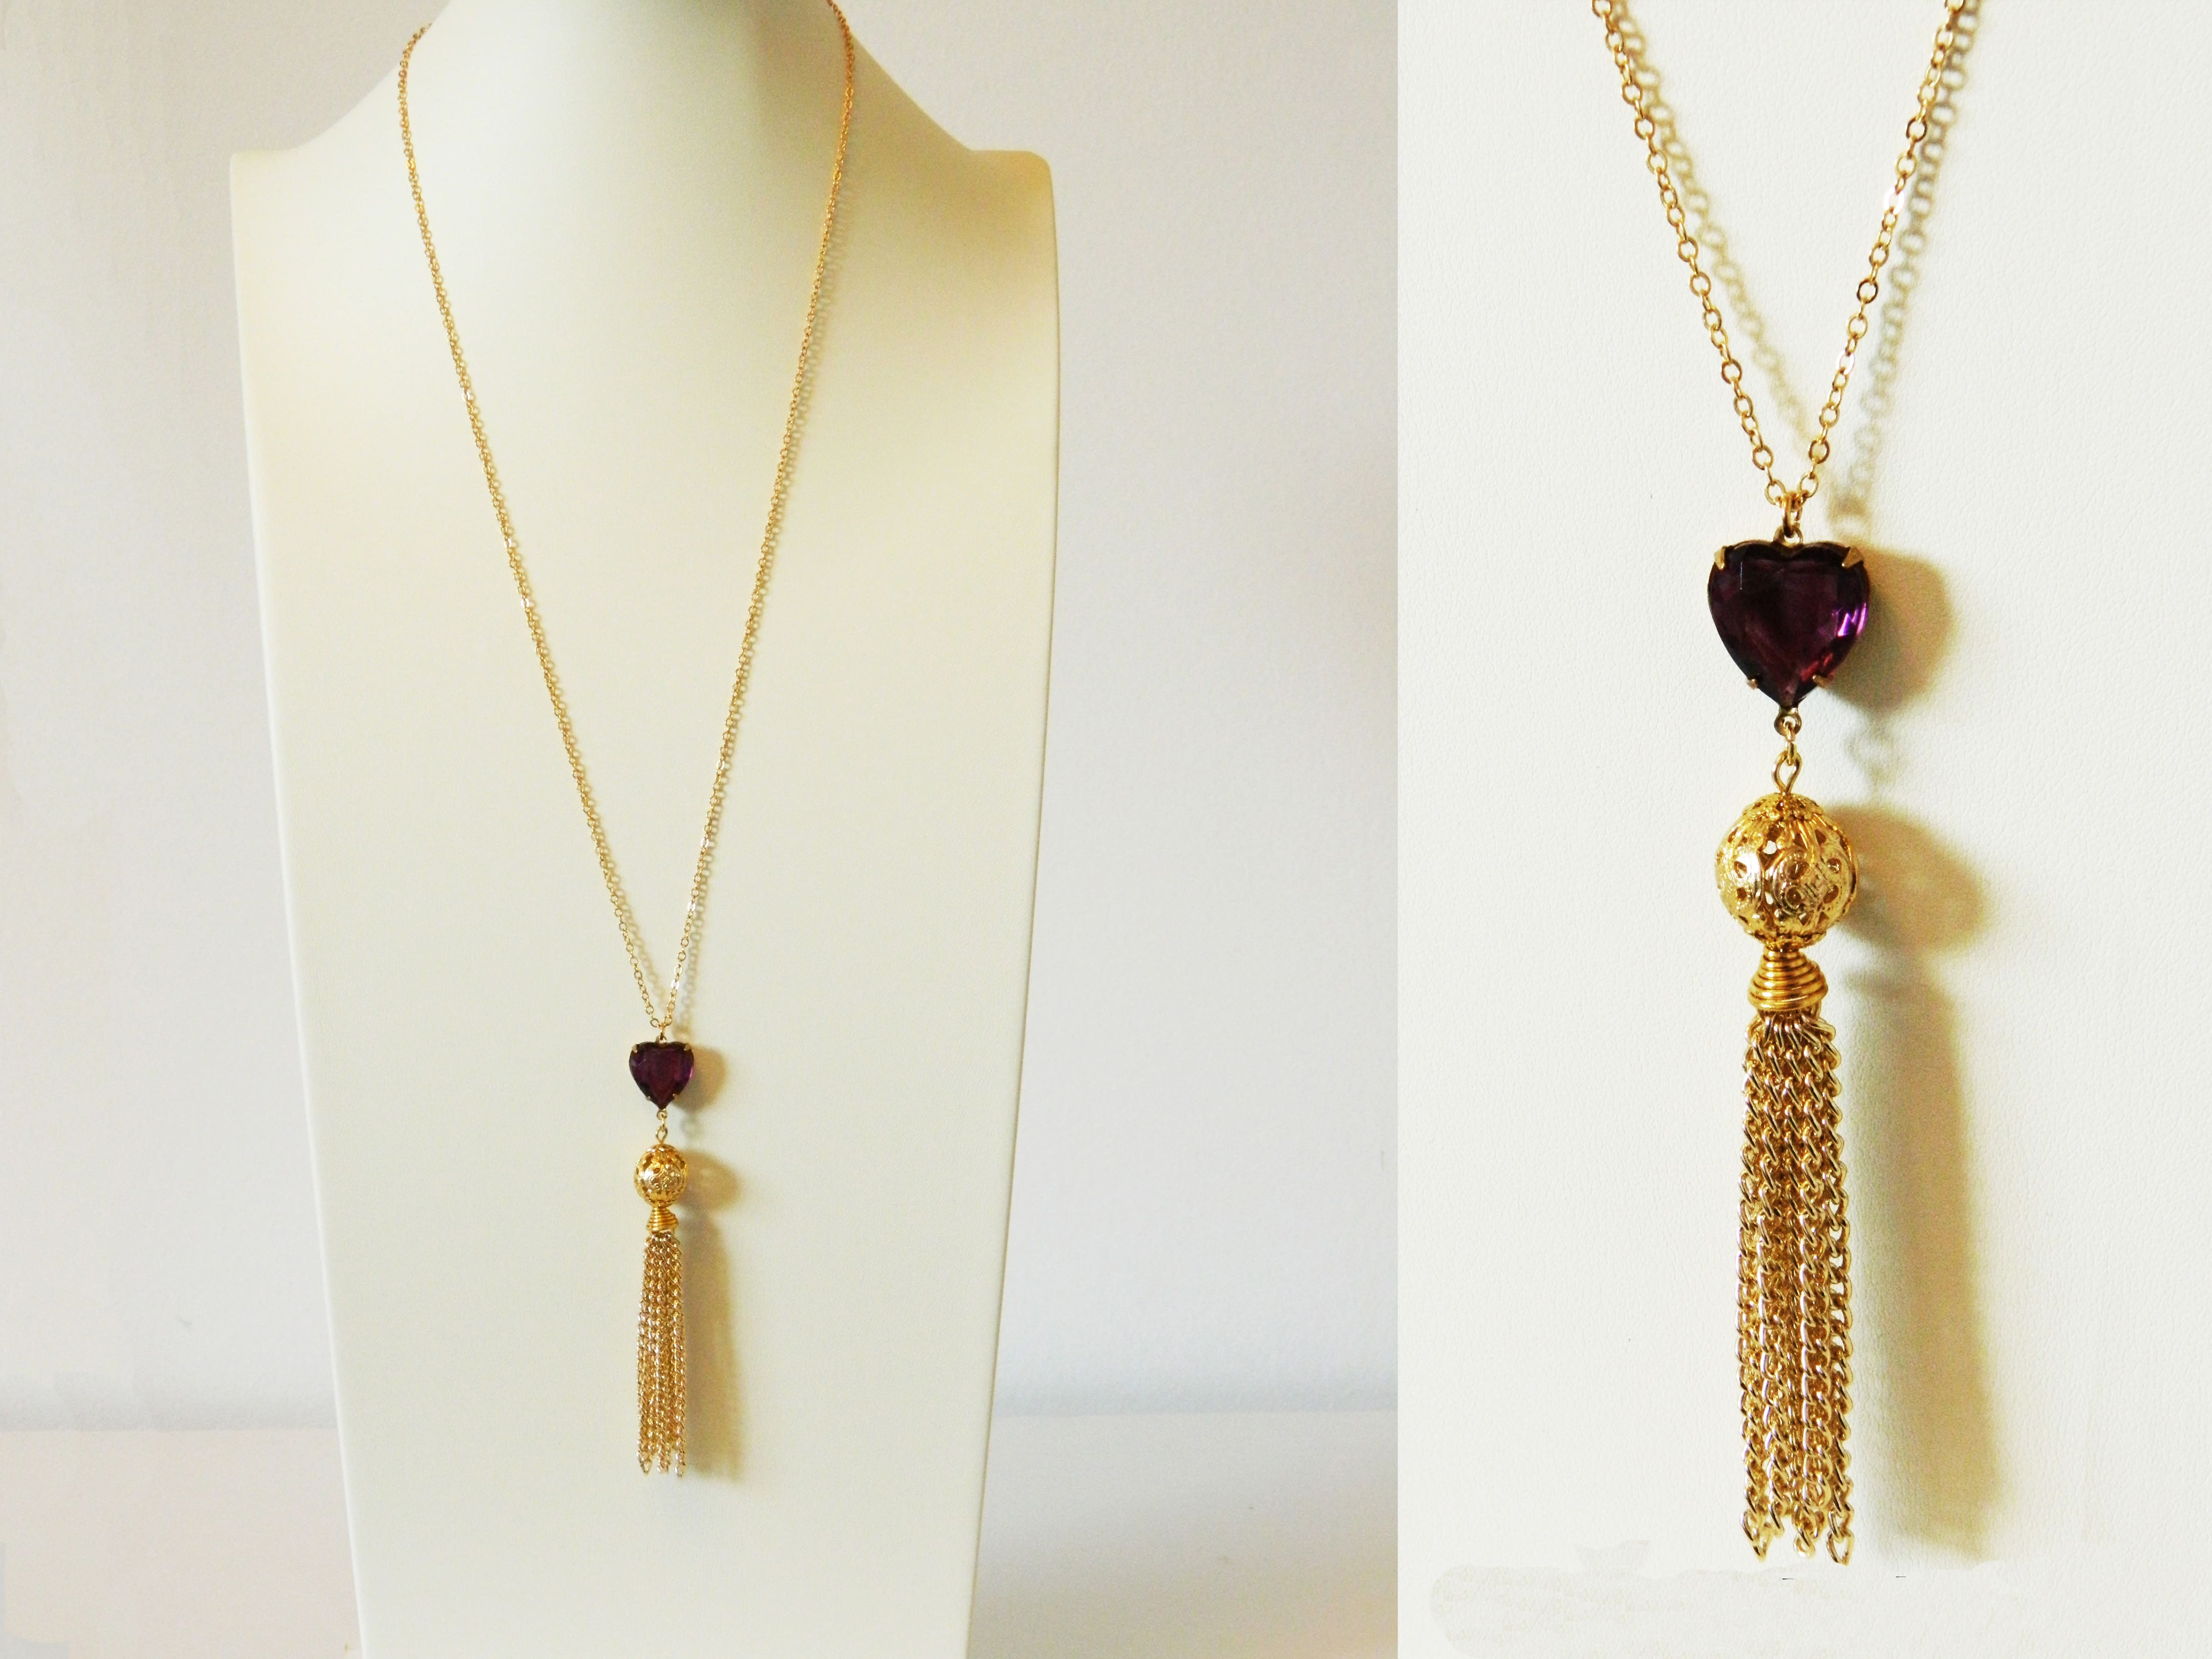 12 Canadian-made gift ideas for Mother's Day - Crystal-heart tassel necklace